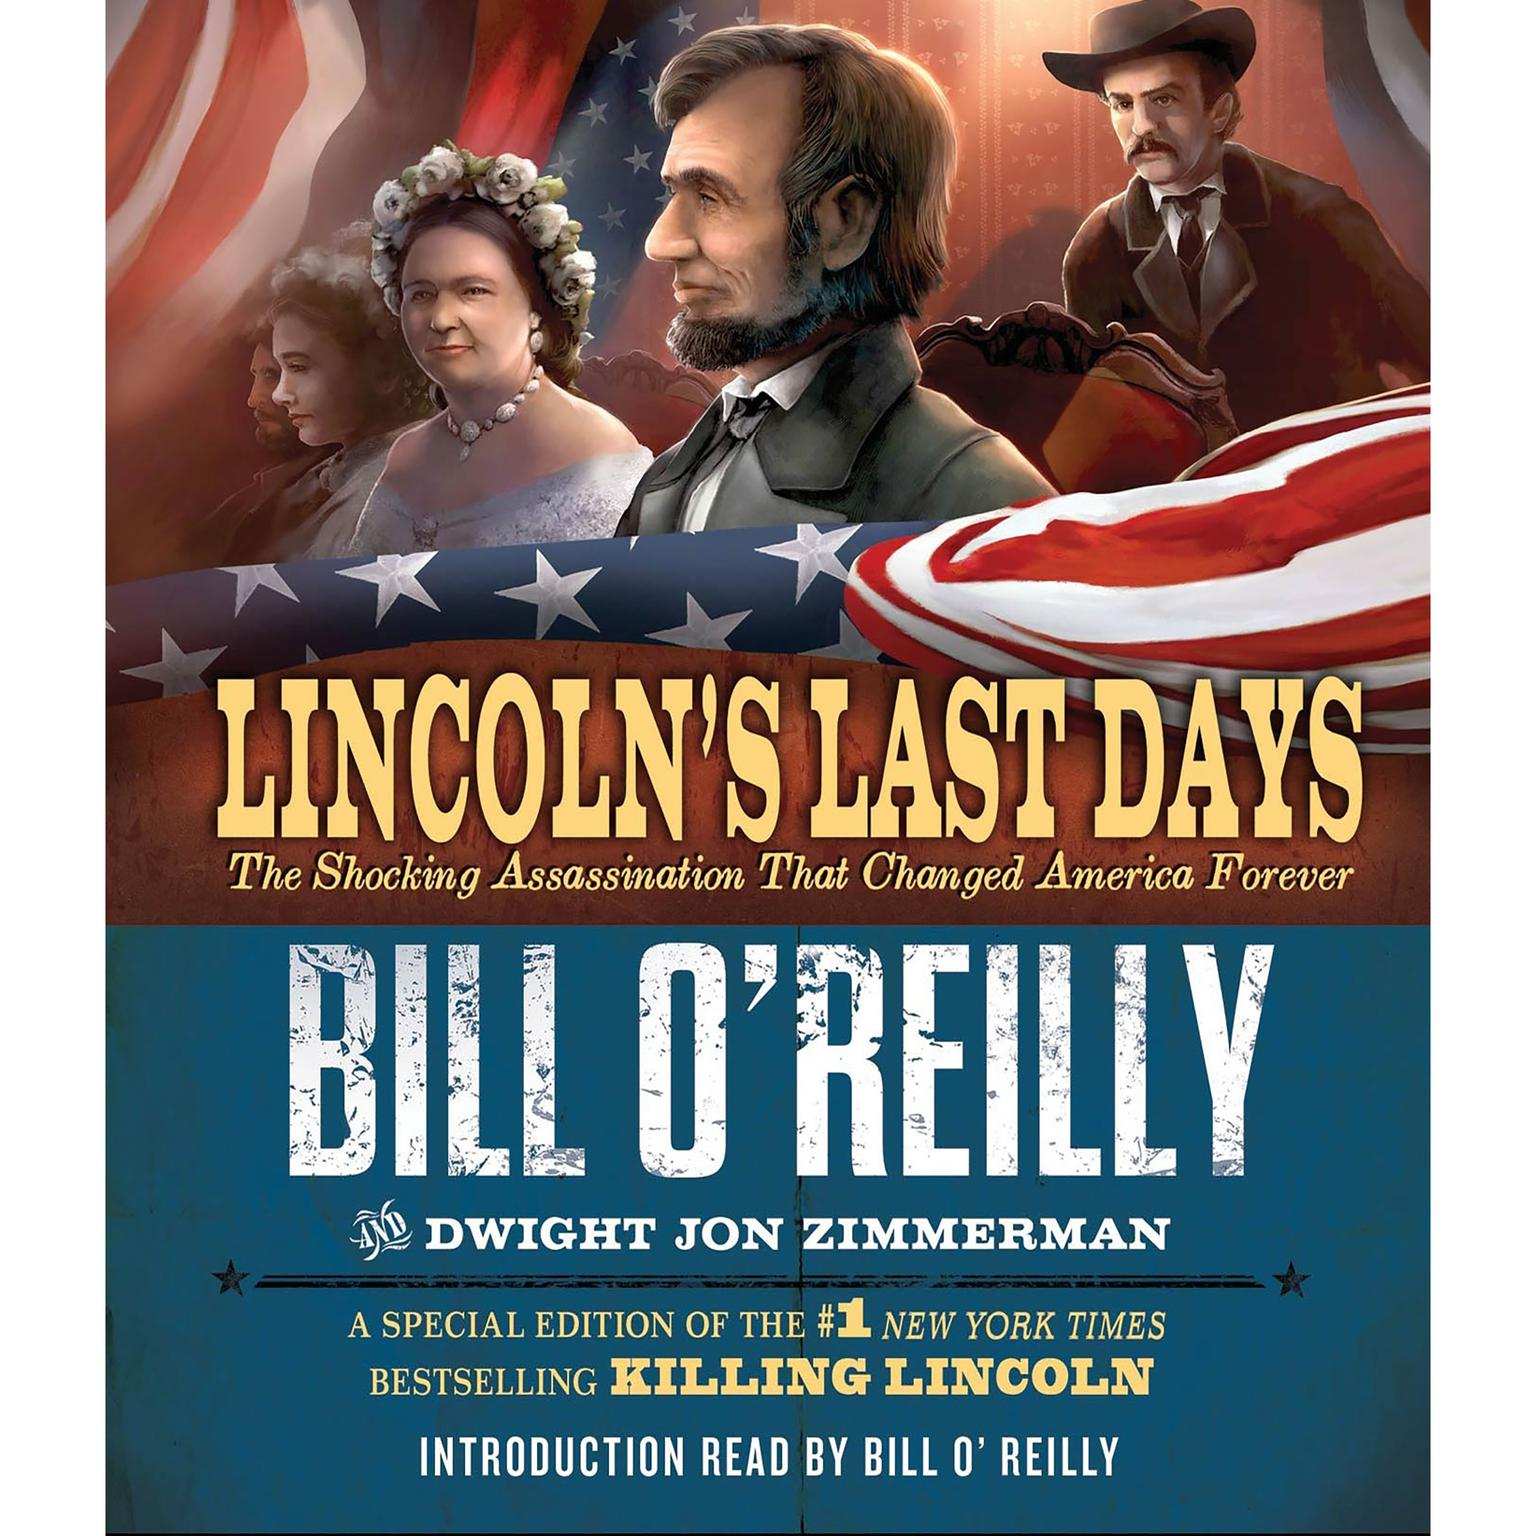 Printable Lincoln's Last Days: The Shocking Assassination that Changed America Forever Audiobook Cover Art